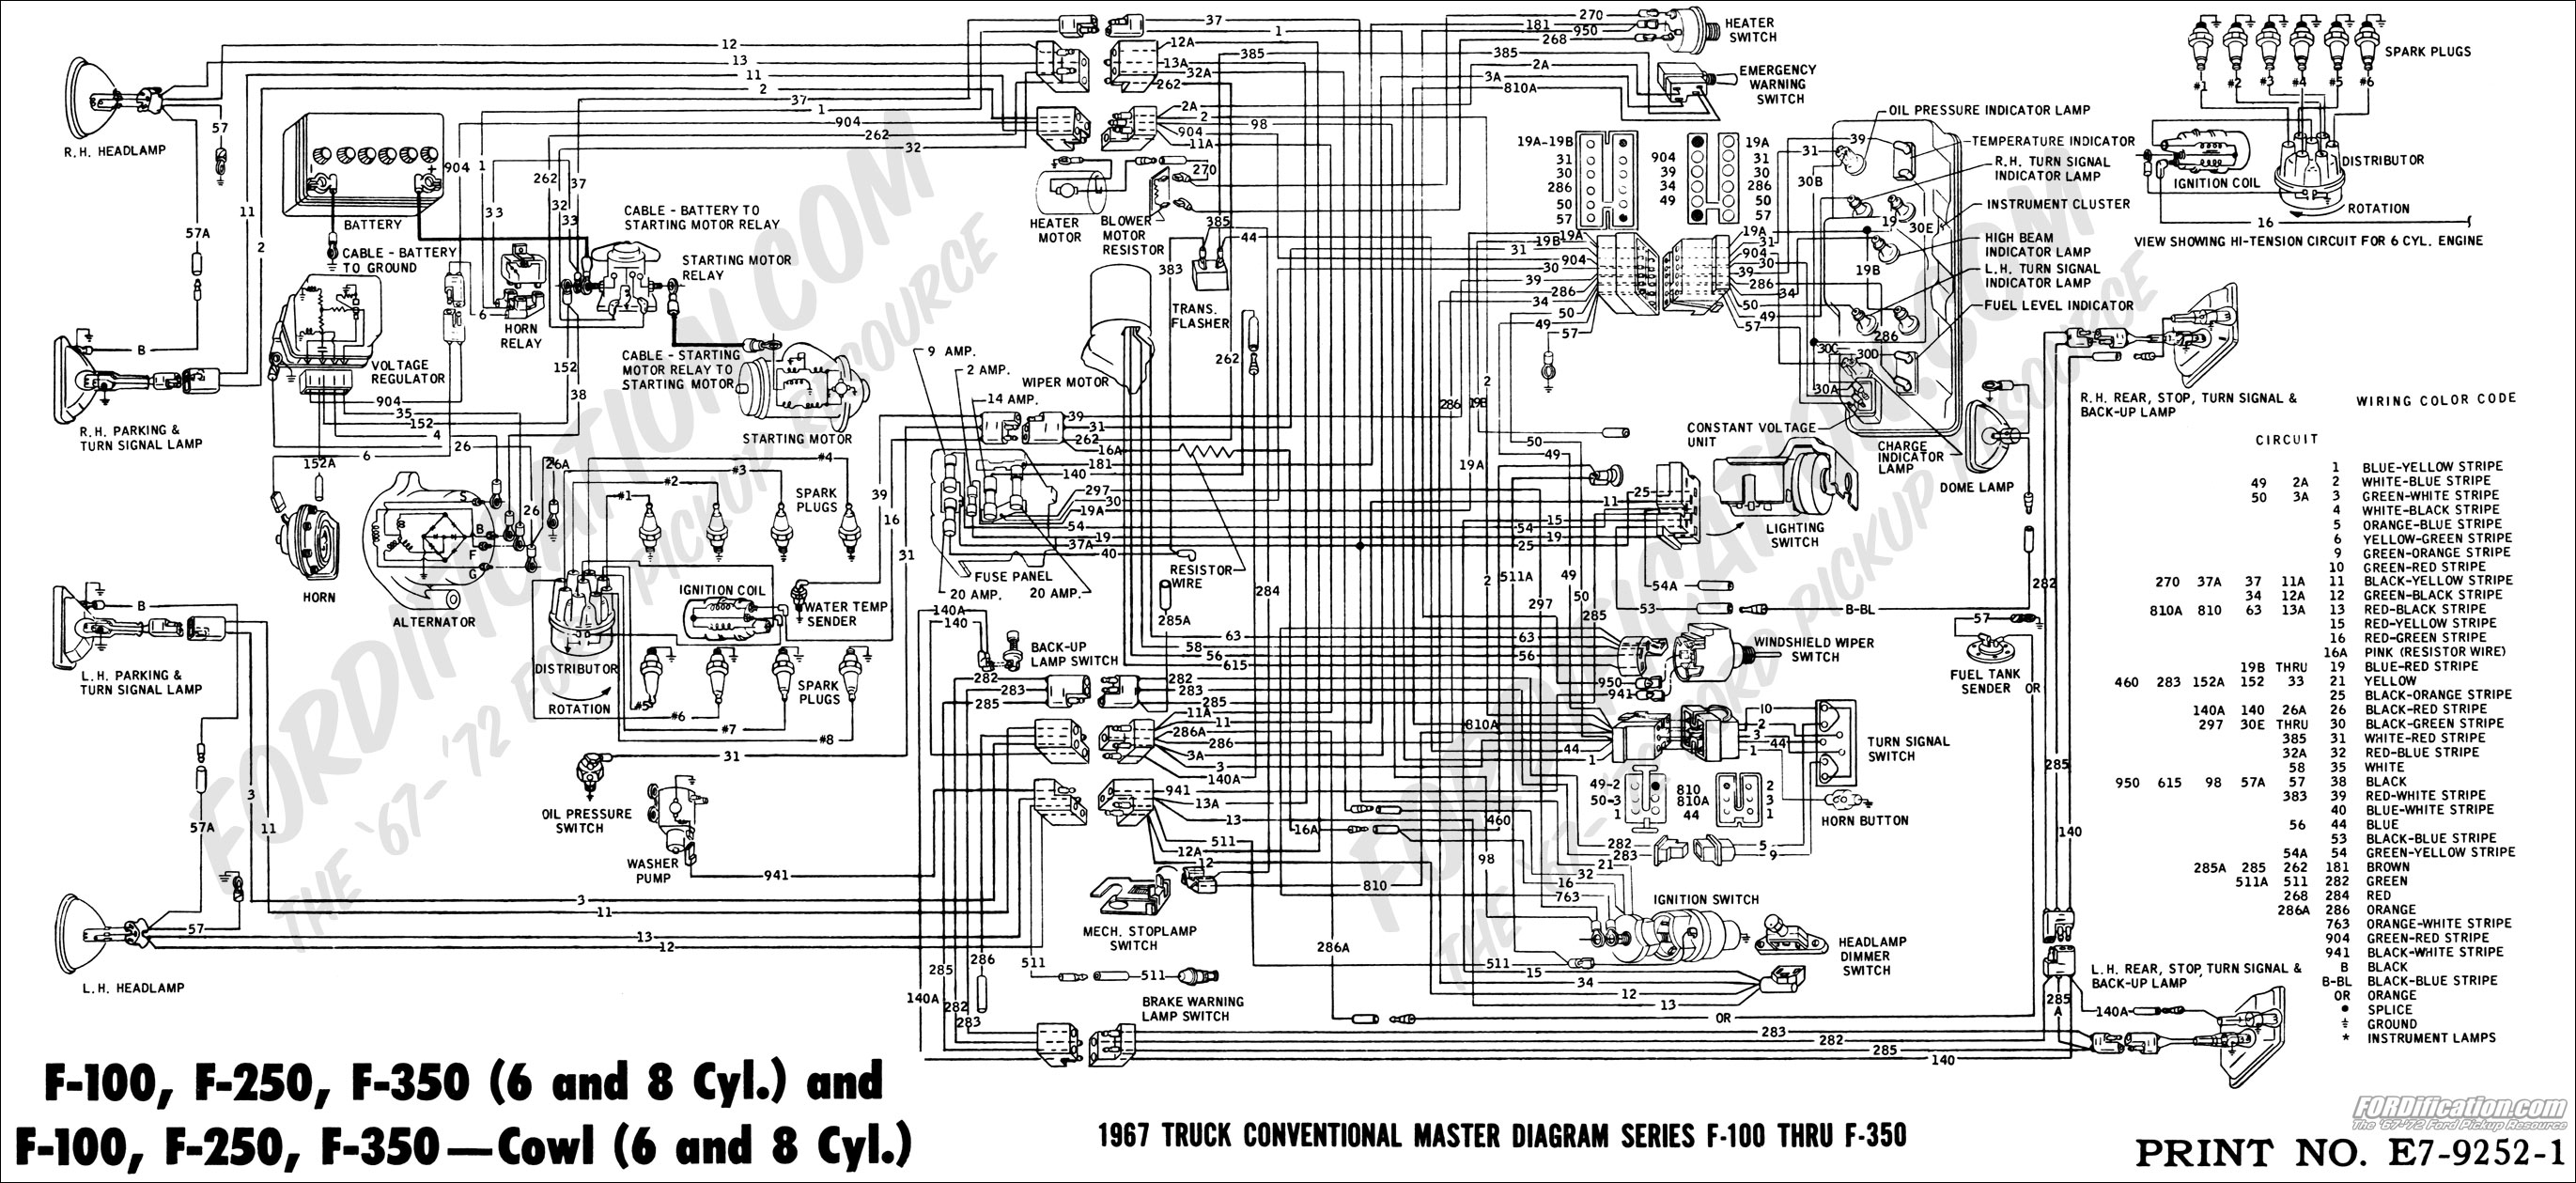 67masterdiagram ford truck technical drawings and schematics section h wiring truck wiring diagrams at soozxer.org